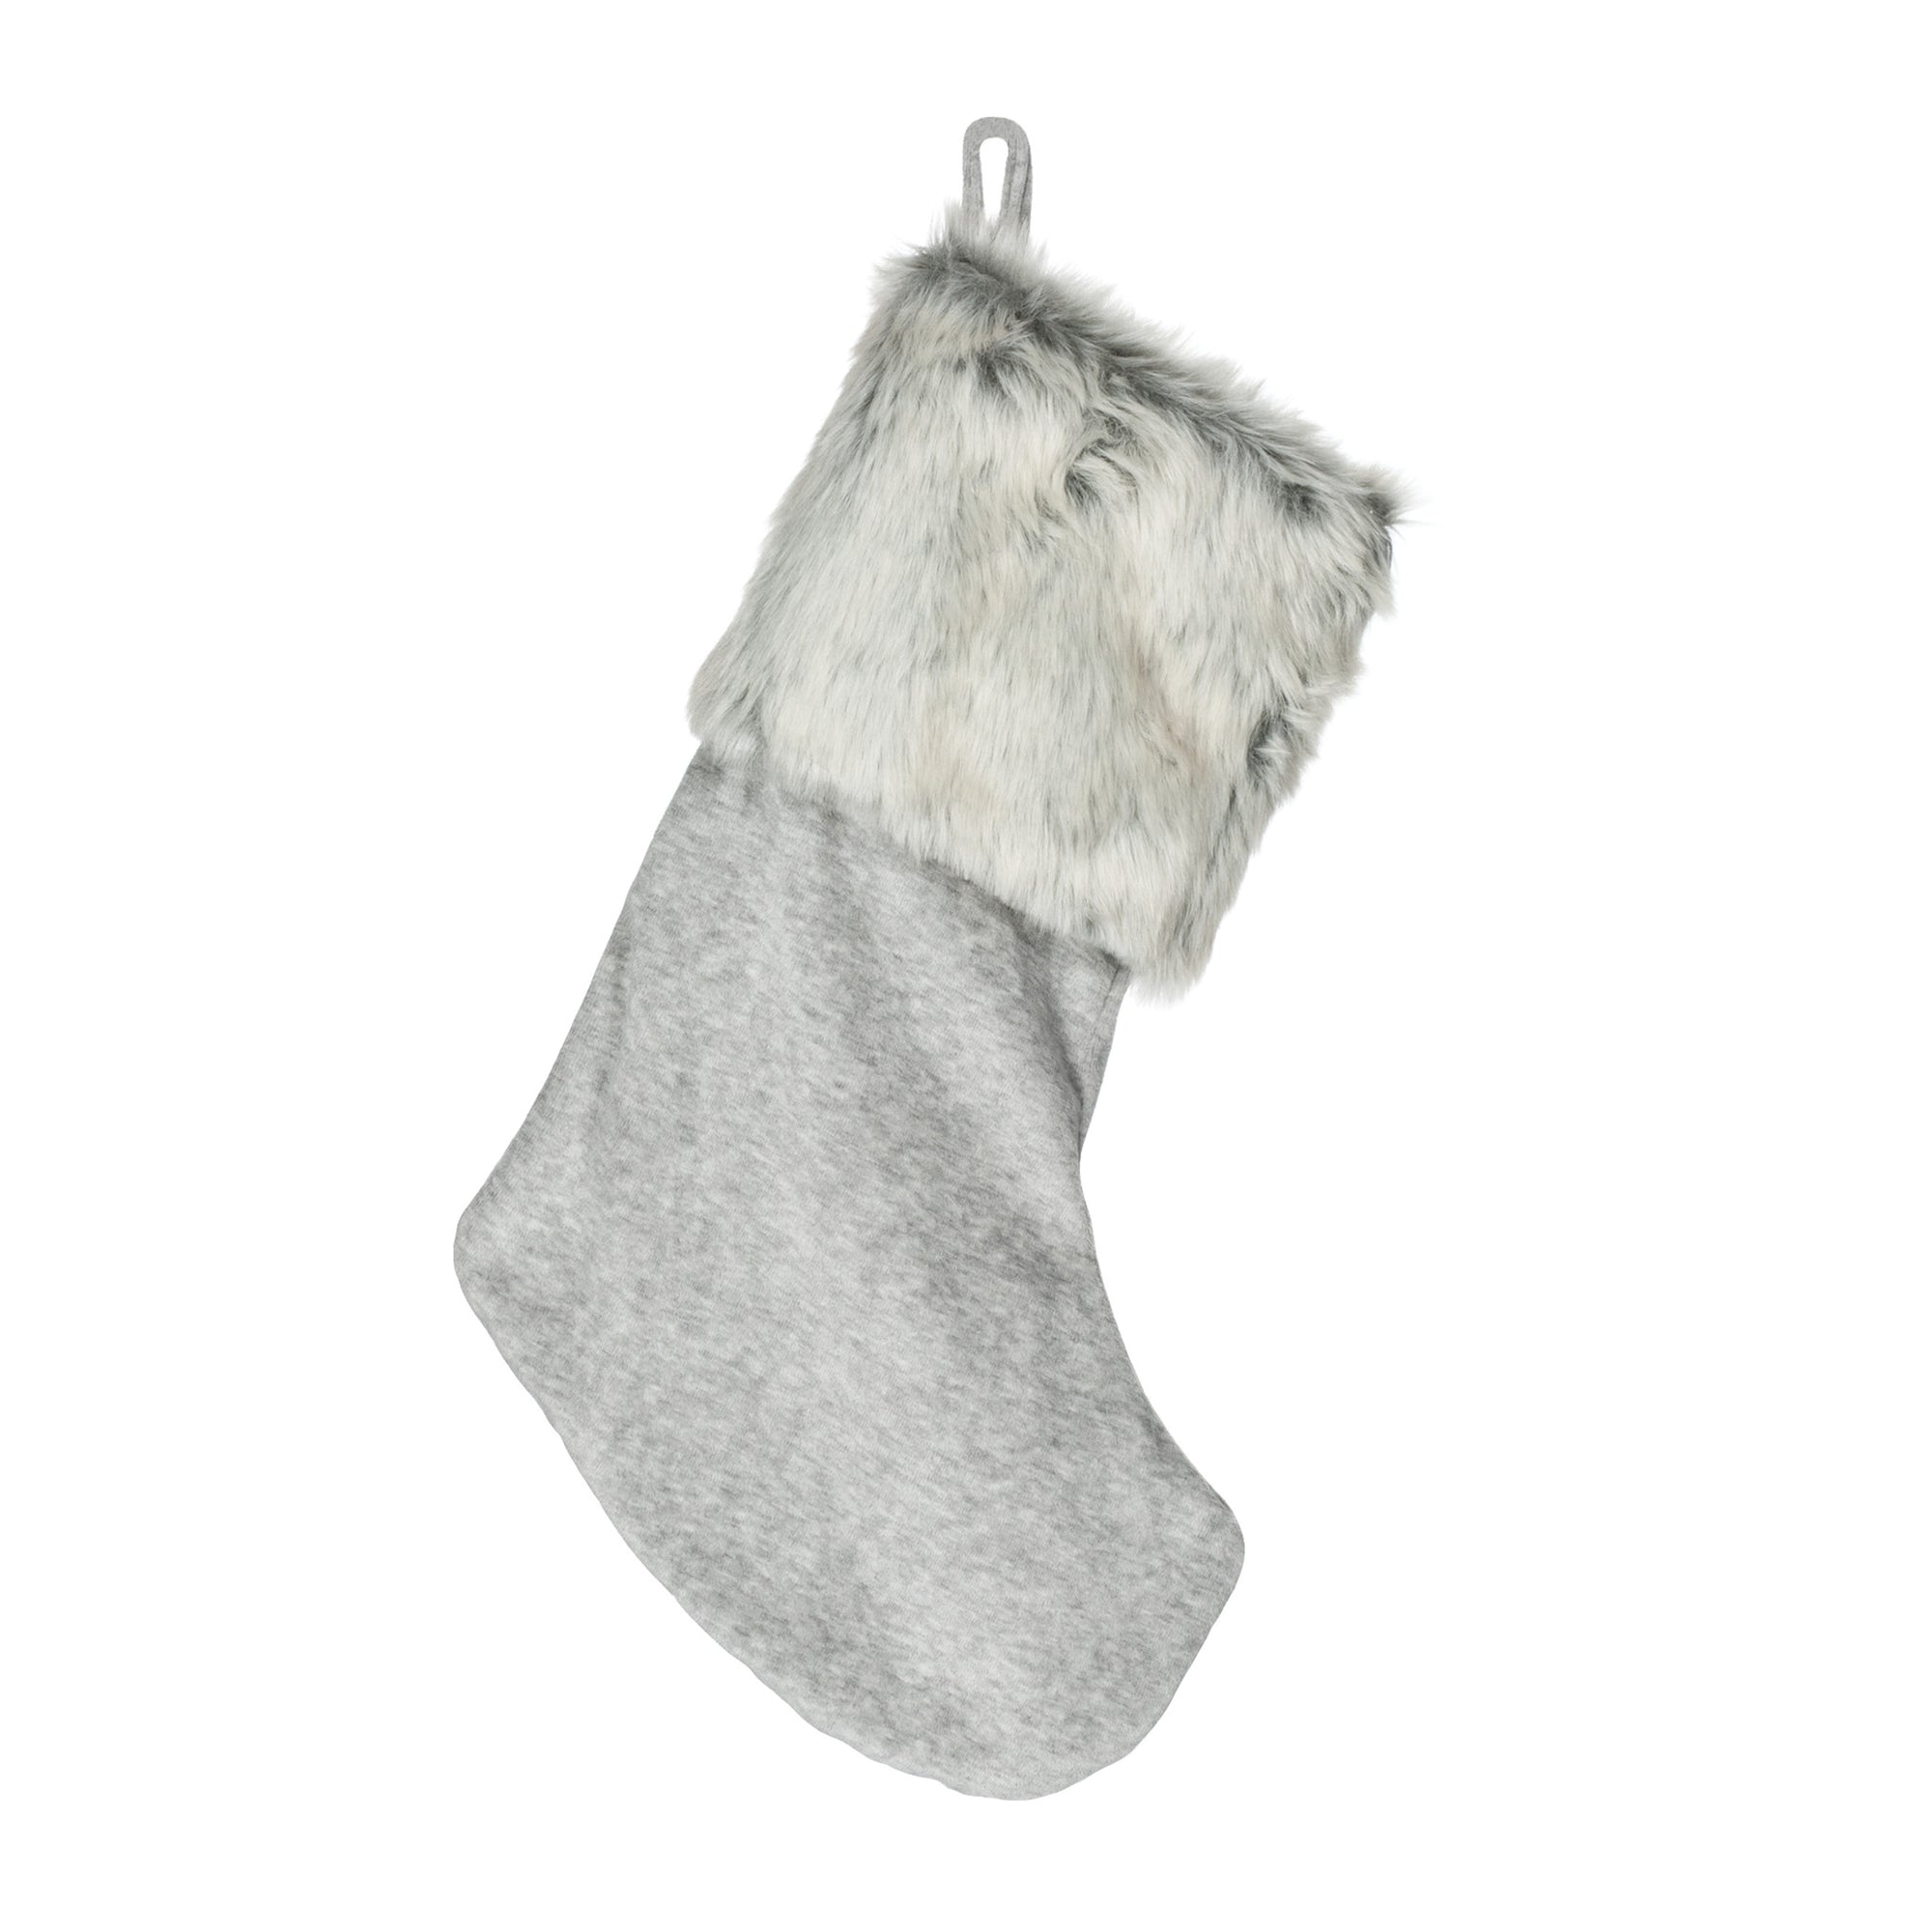 Grey Velvet Stocking with Fur Cuff, AC-Abbott Collection, Putti Fine Furnishings